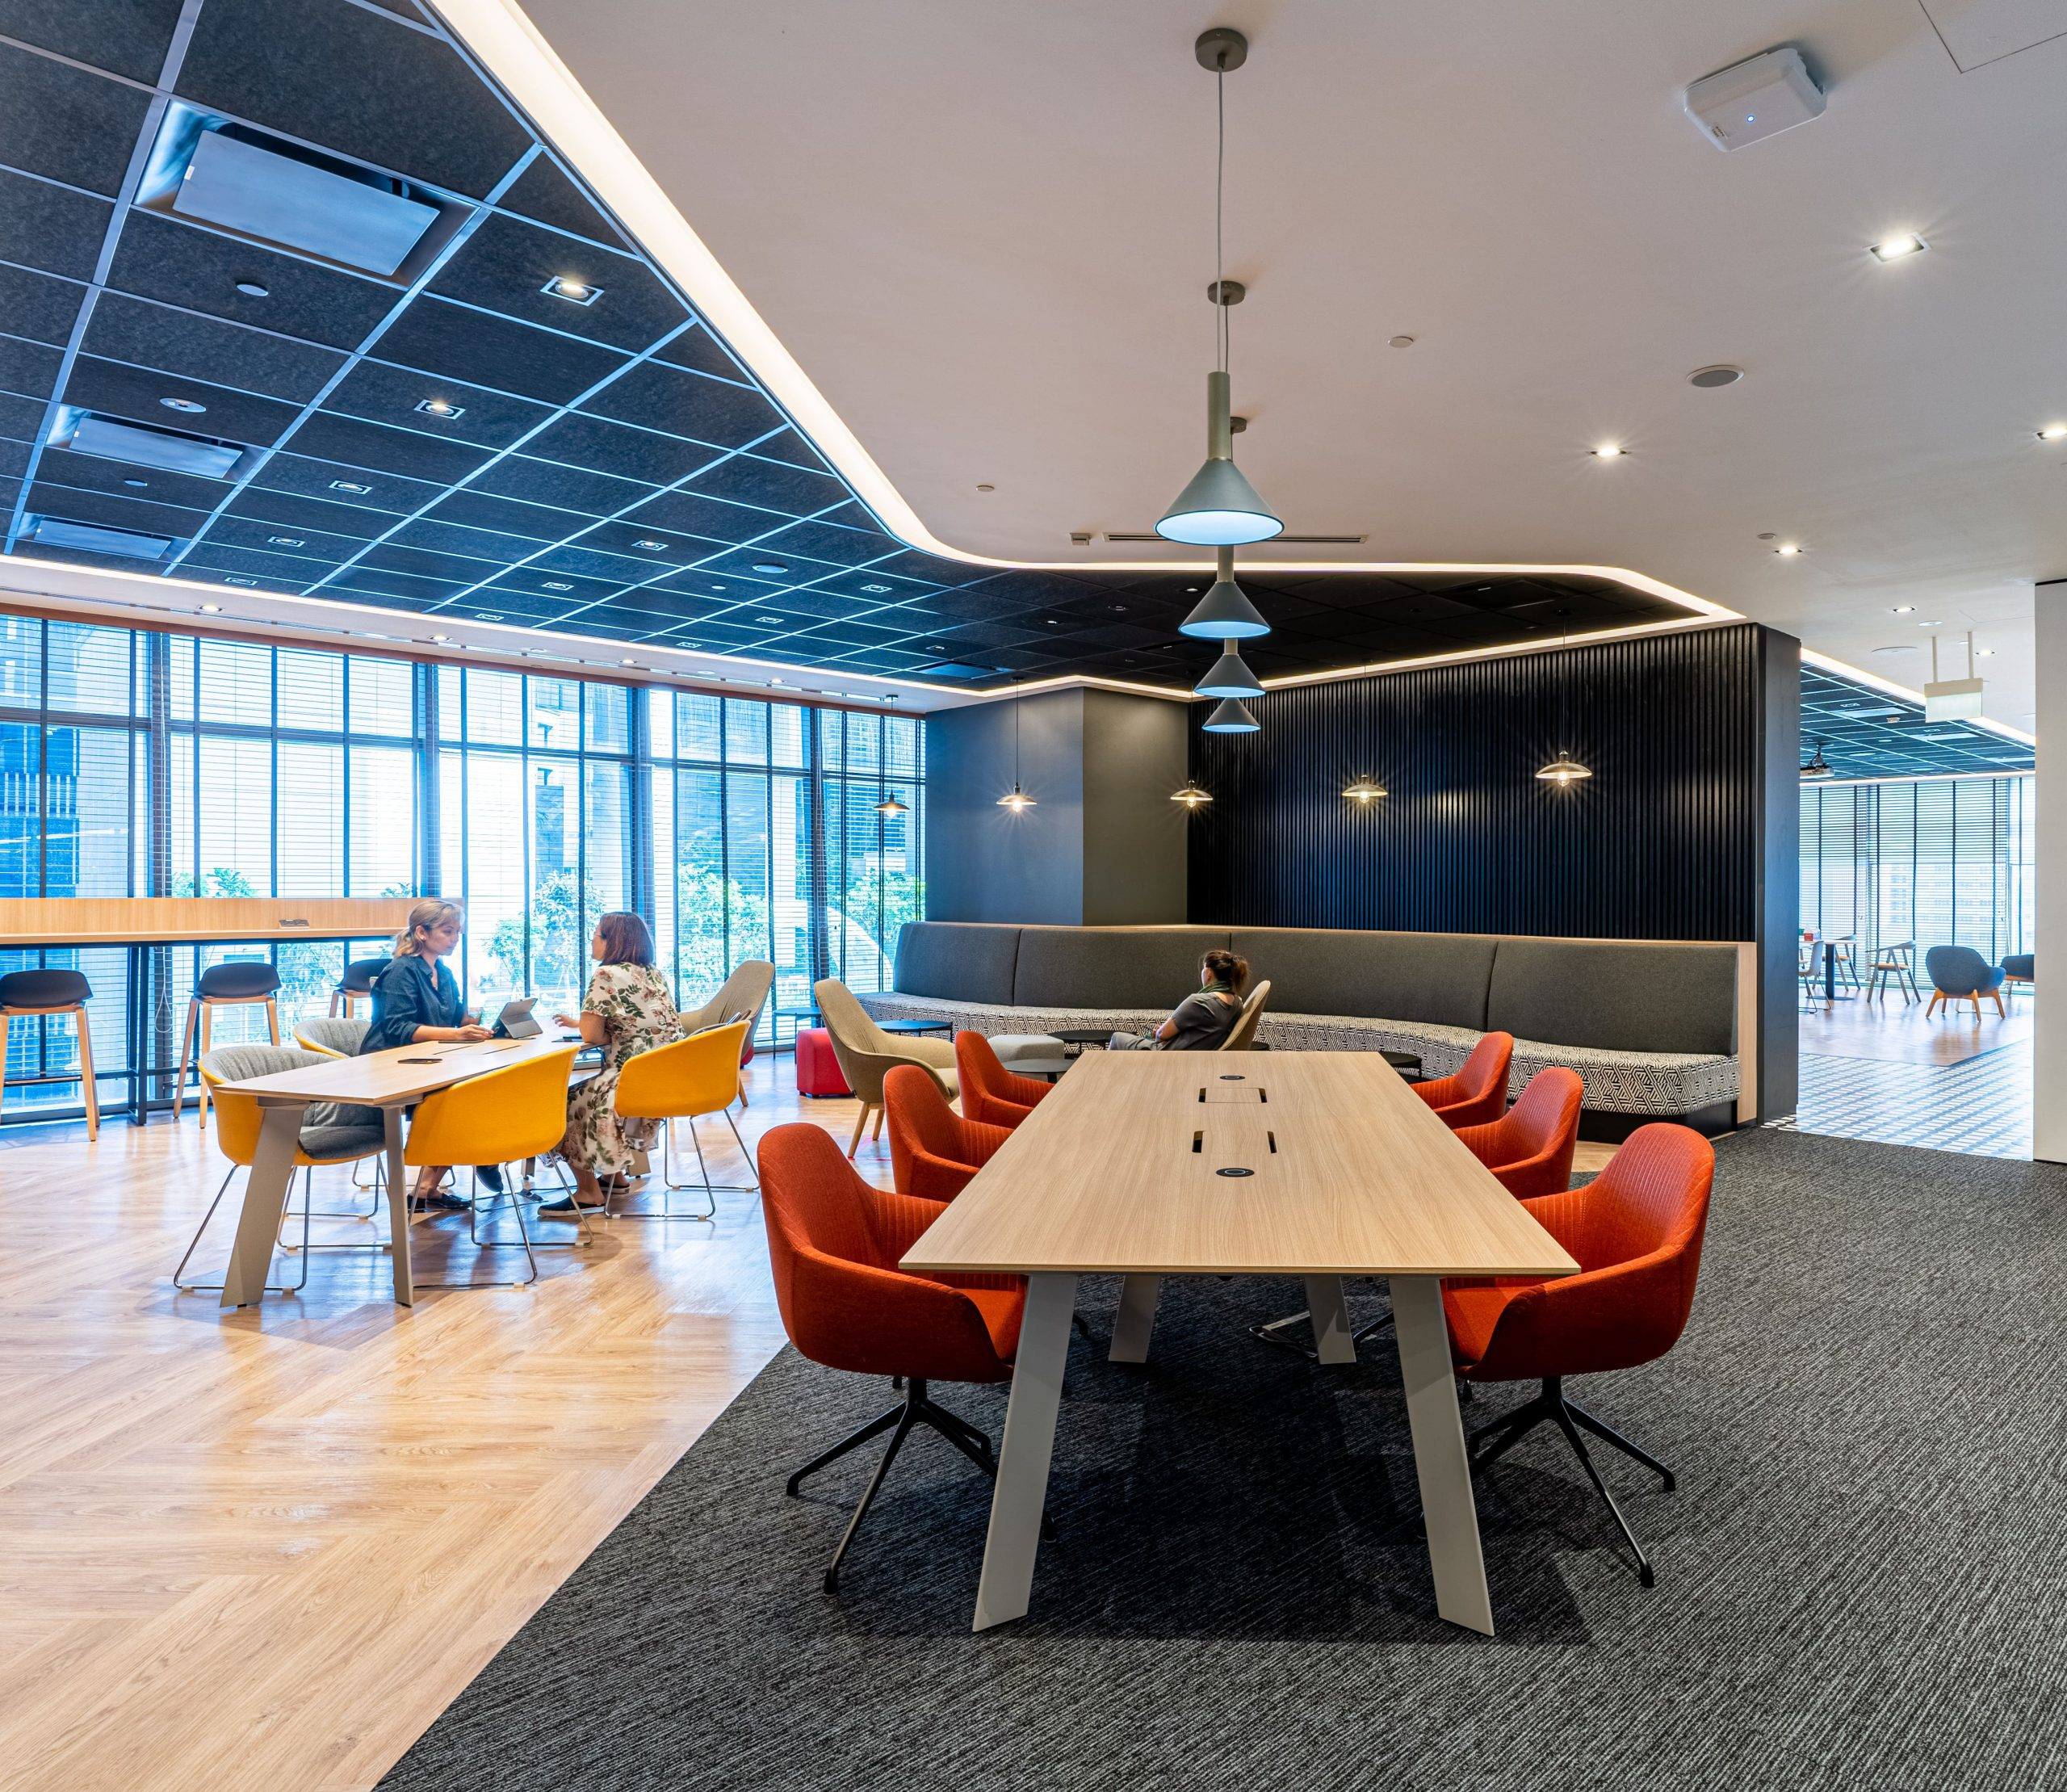 Many firms, like Zebra Technologies, Singapore, are also examining the neighborhood approach to workspace planning